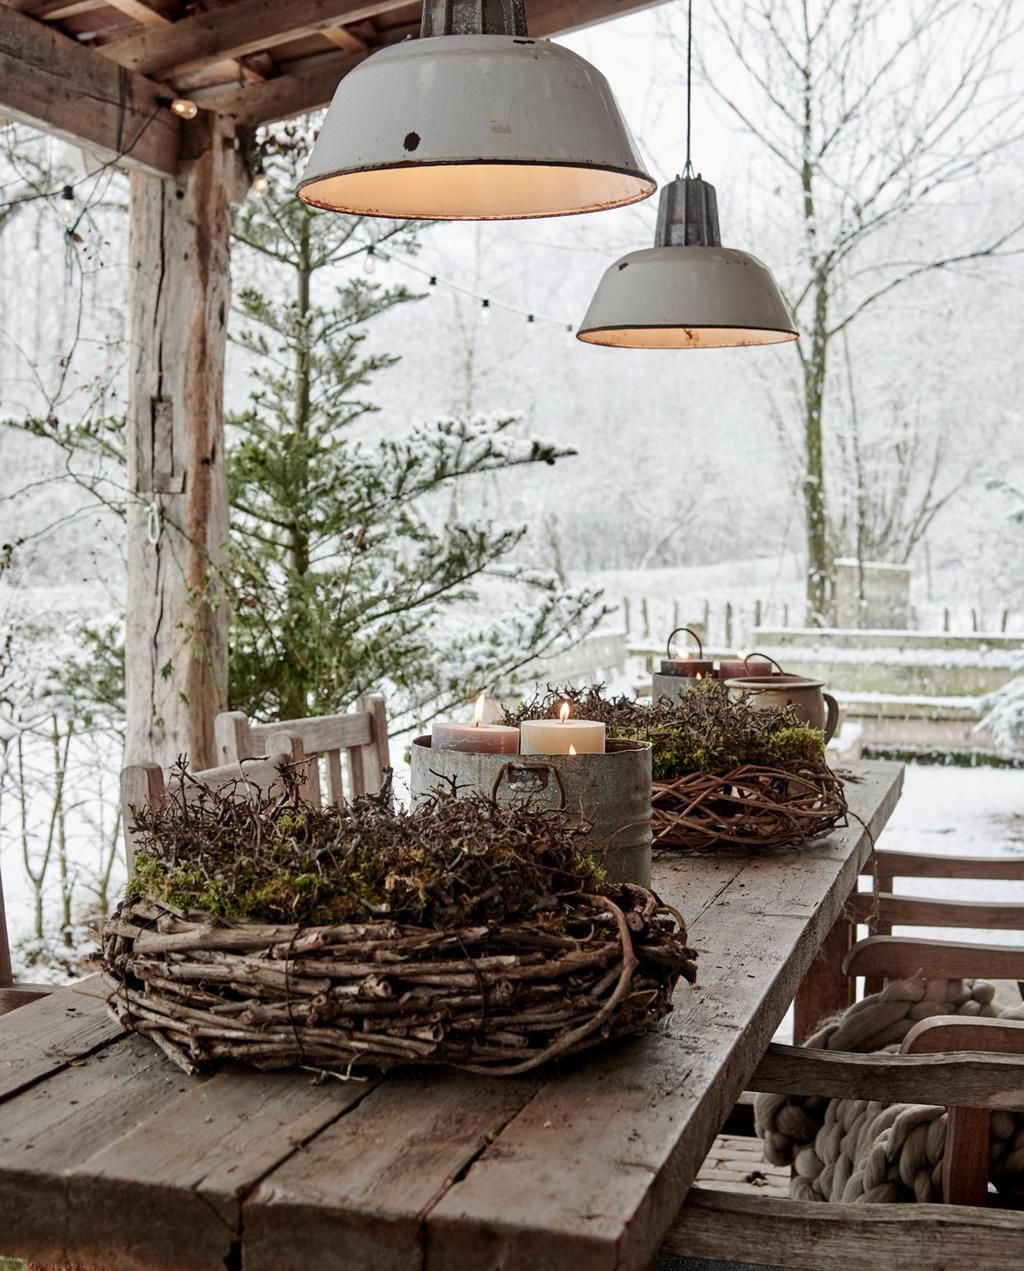 Photo of Noël vert et naturel dans une ancienne ferme – PLANETE DECO a homes world